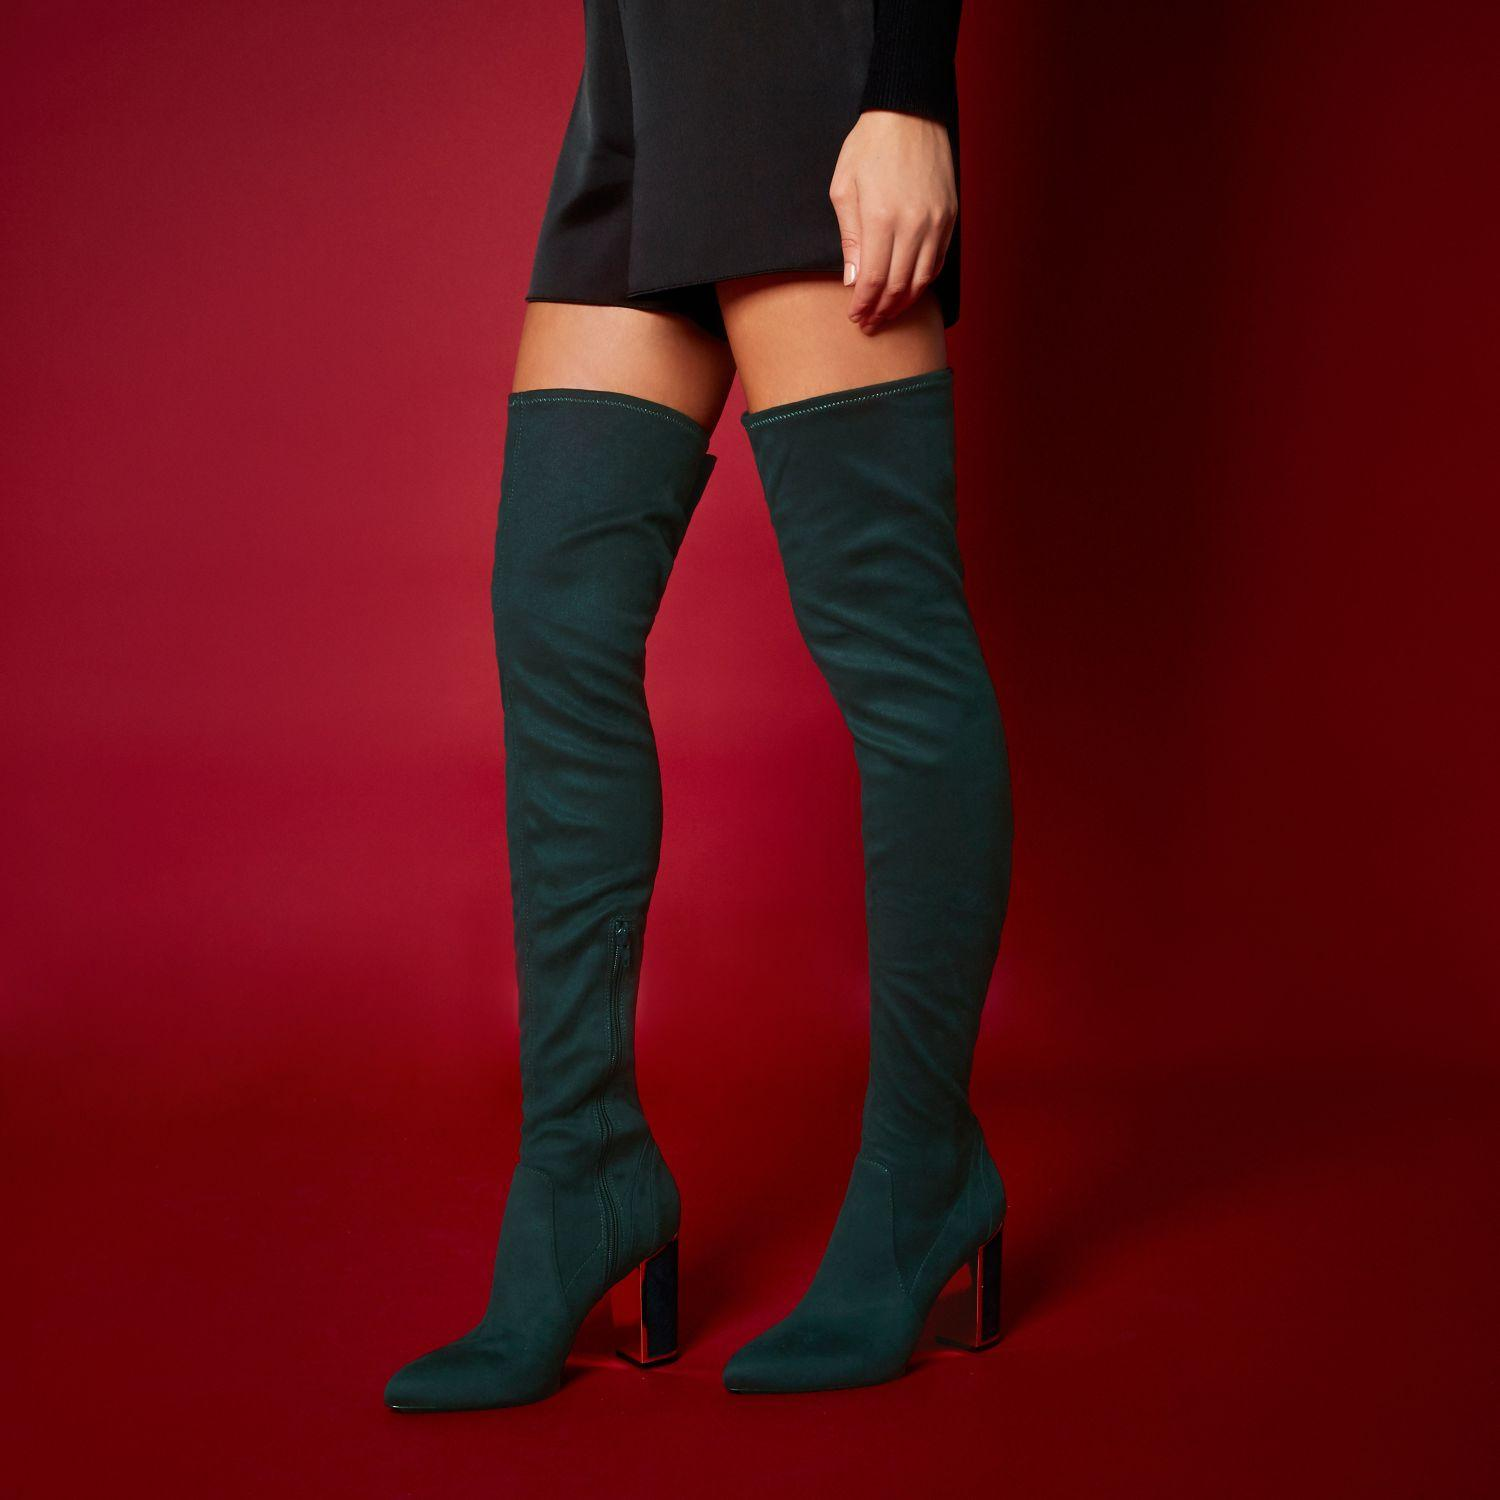 b745f419486 Lyst - River Island Ri Studio Dark Green Over The Knee Boots in Green